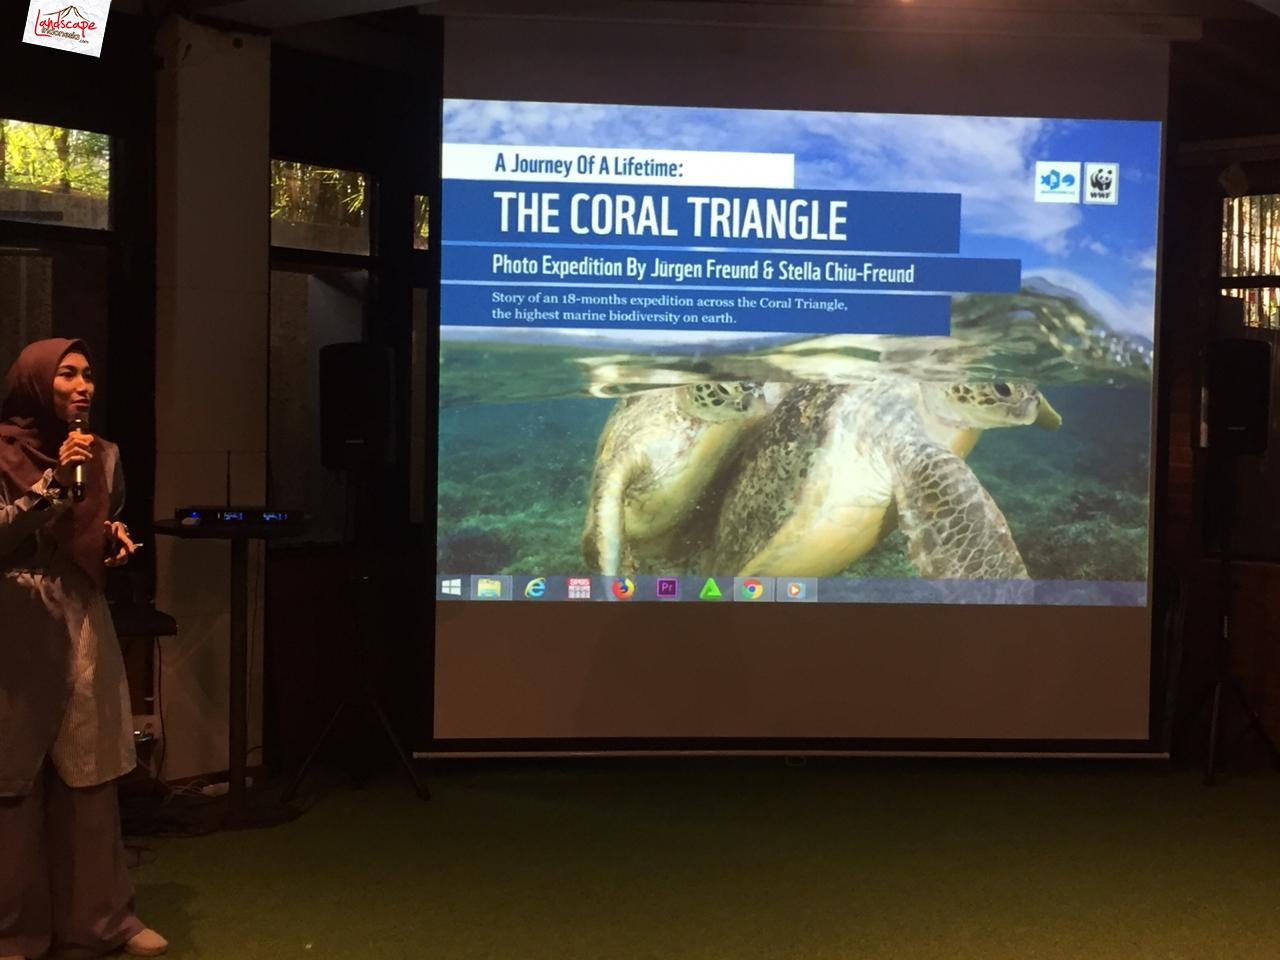 coral triangle photo expedition 1 - A Journey Of A Lifetime: The Coral Triangle Photo Expedition